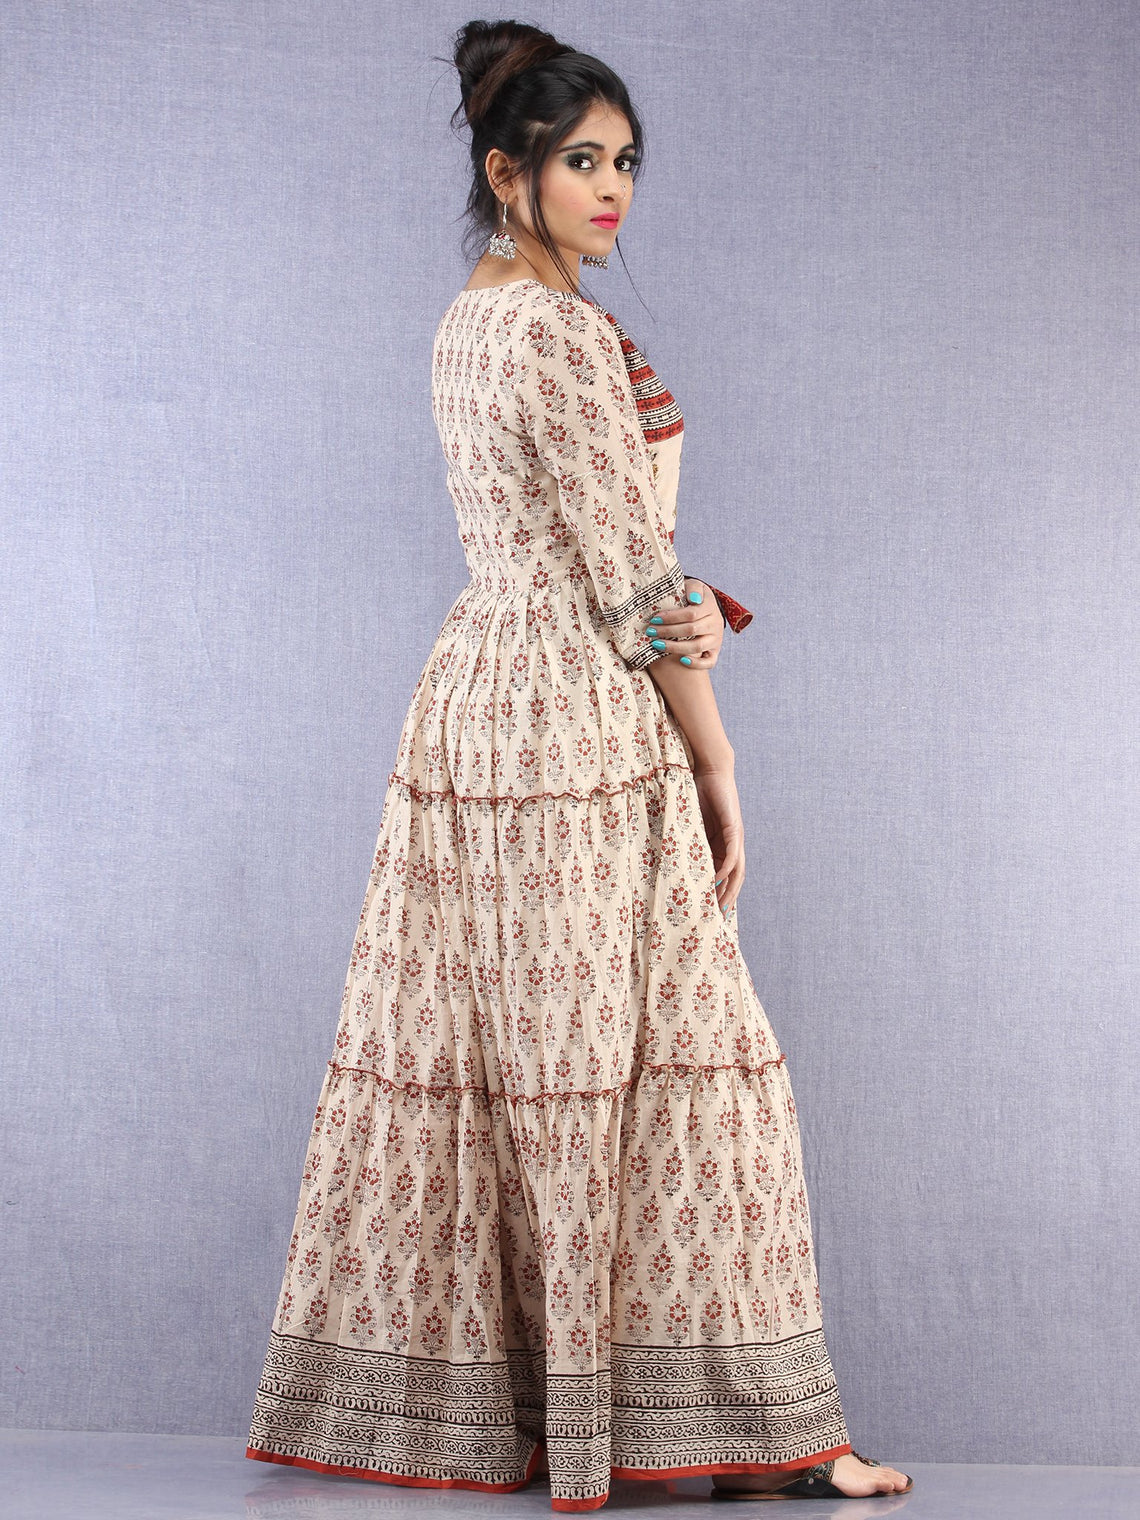 Mahira - Hand Block Printed Long Cotton Tiered Embroidered Angrakha Dress - DS89F001